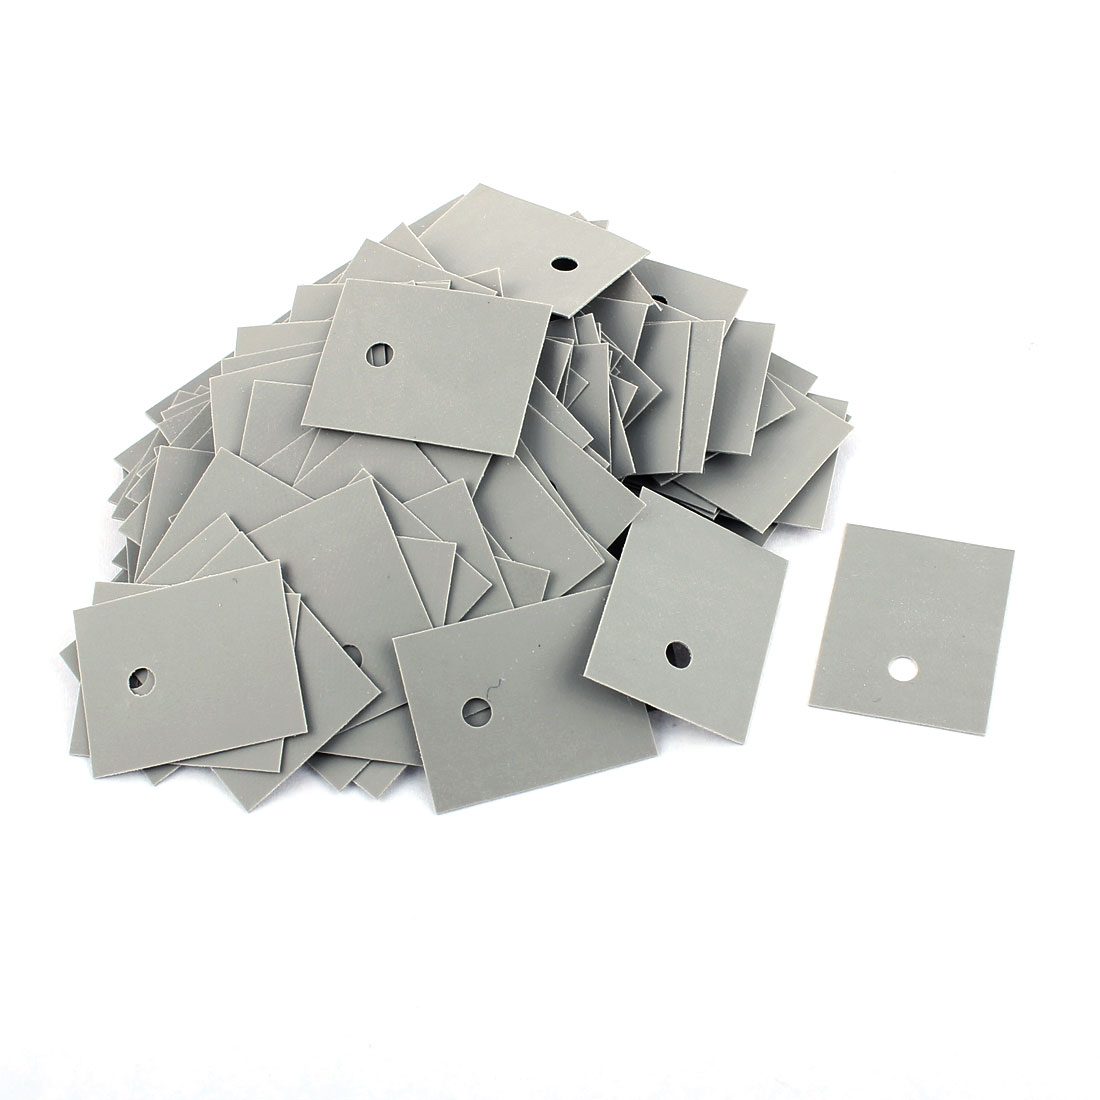 150 Pcs 25mm x 20mm x 0.3mm Silicone Thermal Insulation Pad Sheet - image 2 of 2